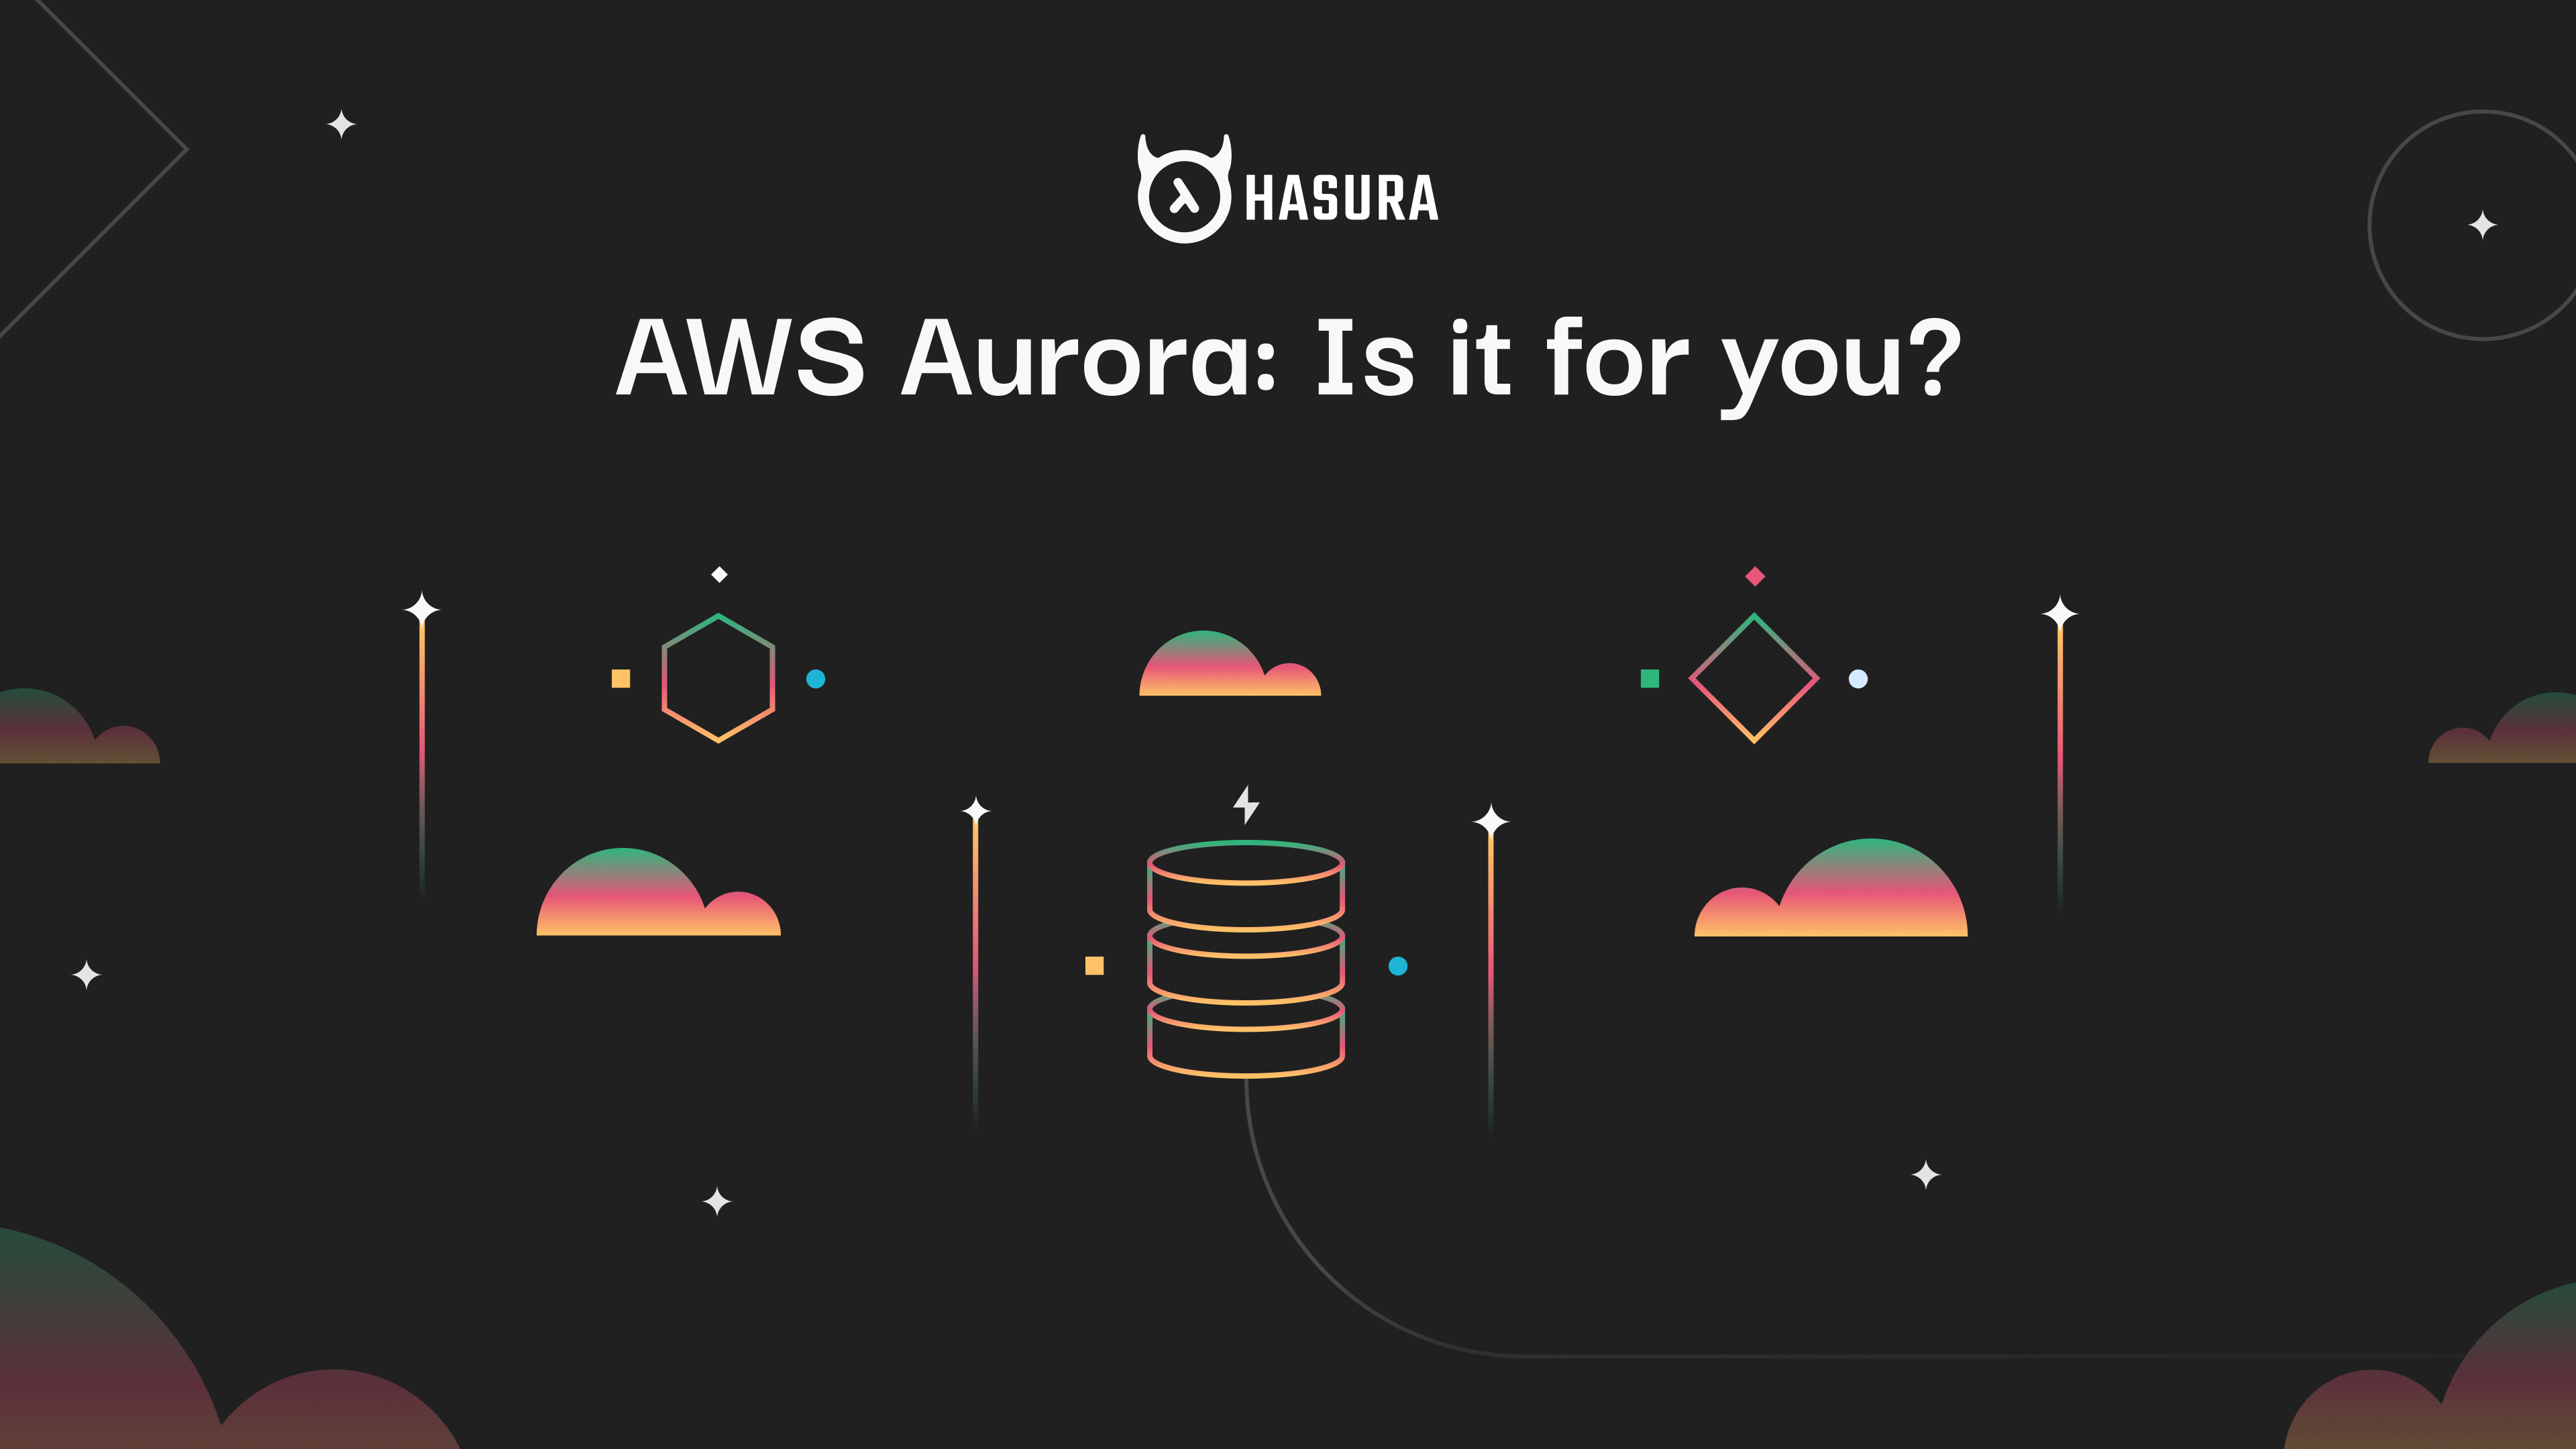 AWS Aurora: Is it for you?